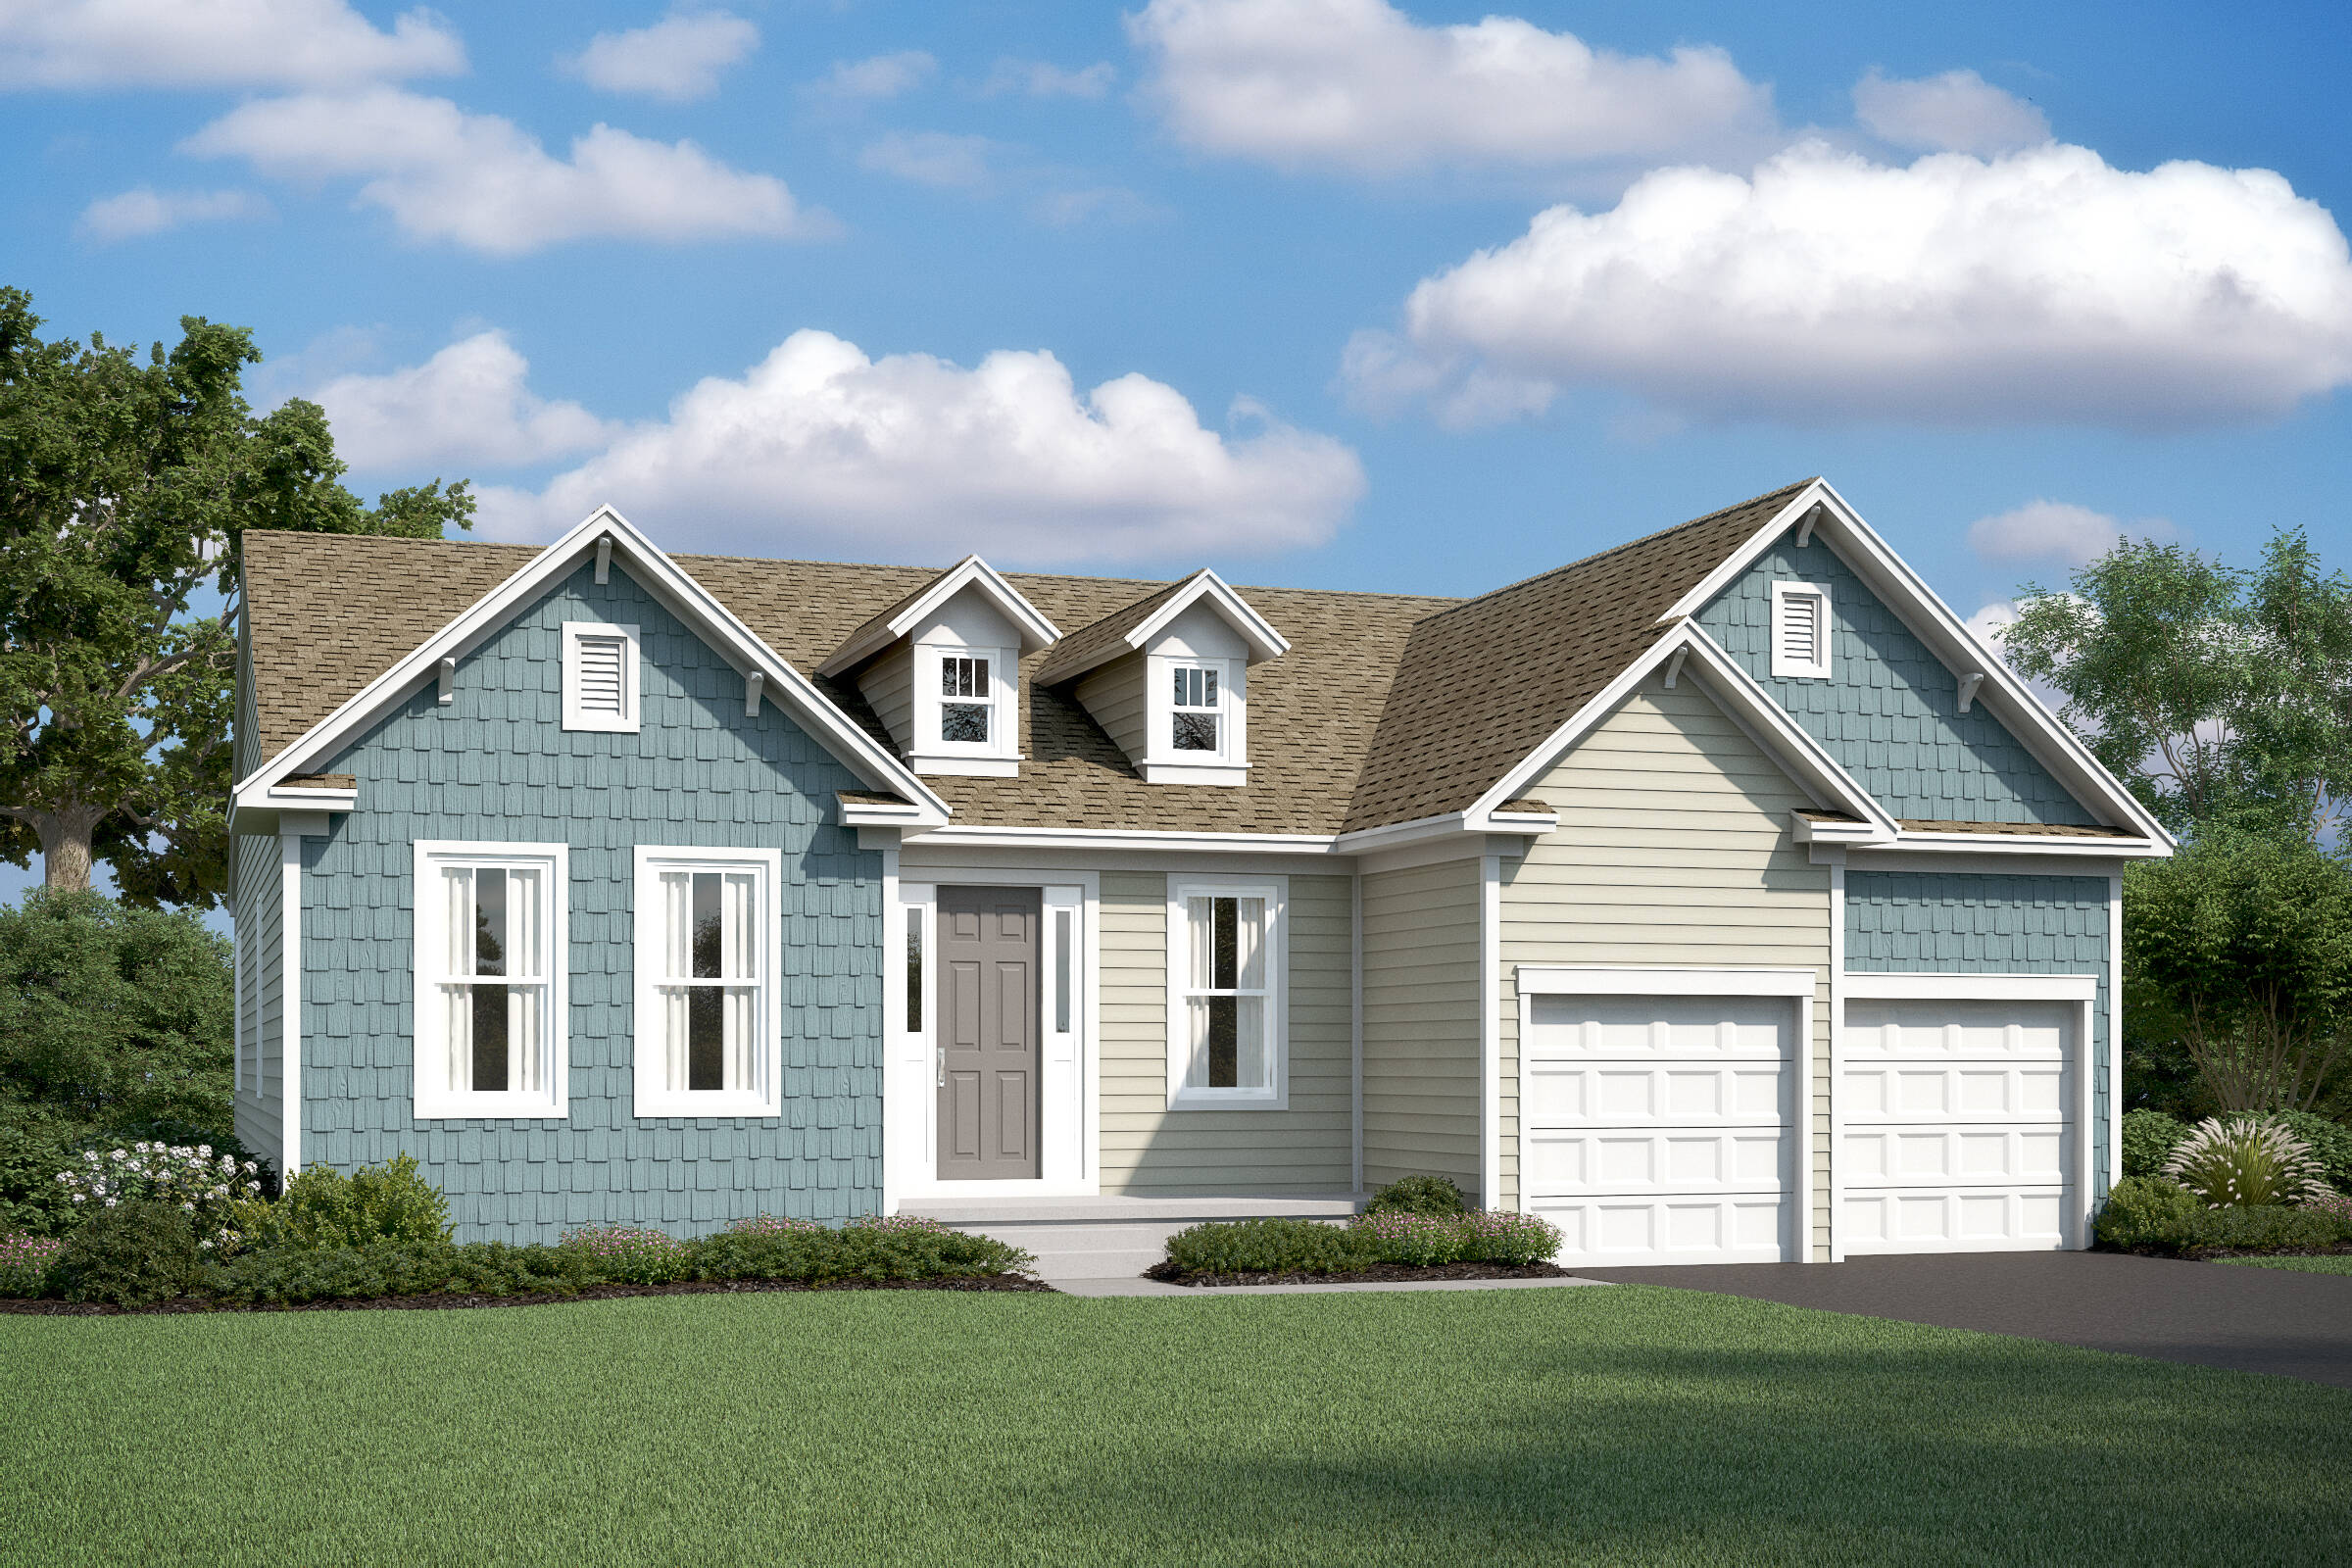 st michael d new homes at red mill pond in delaware